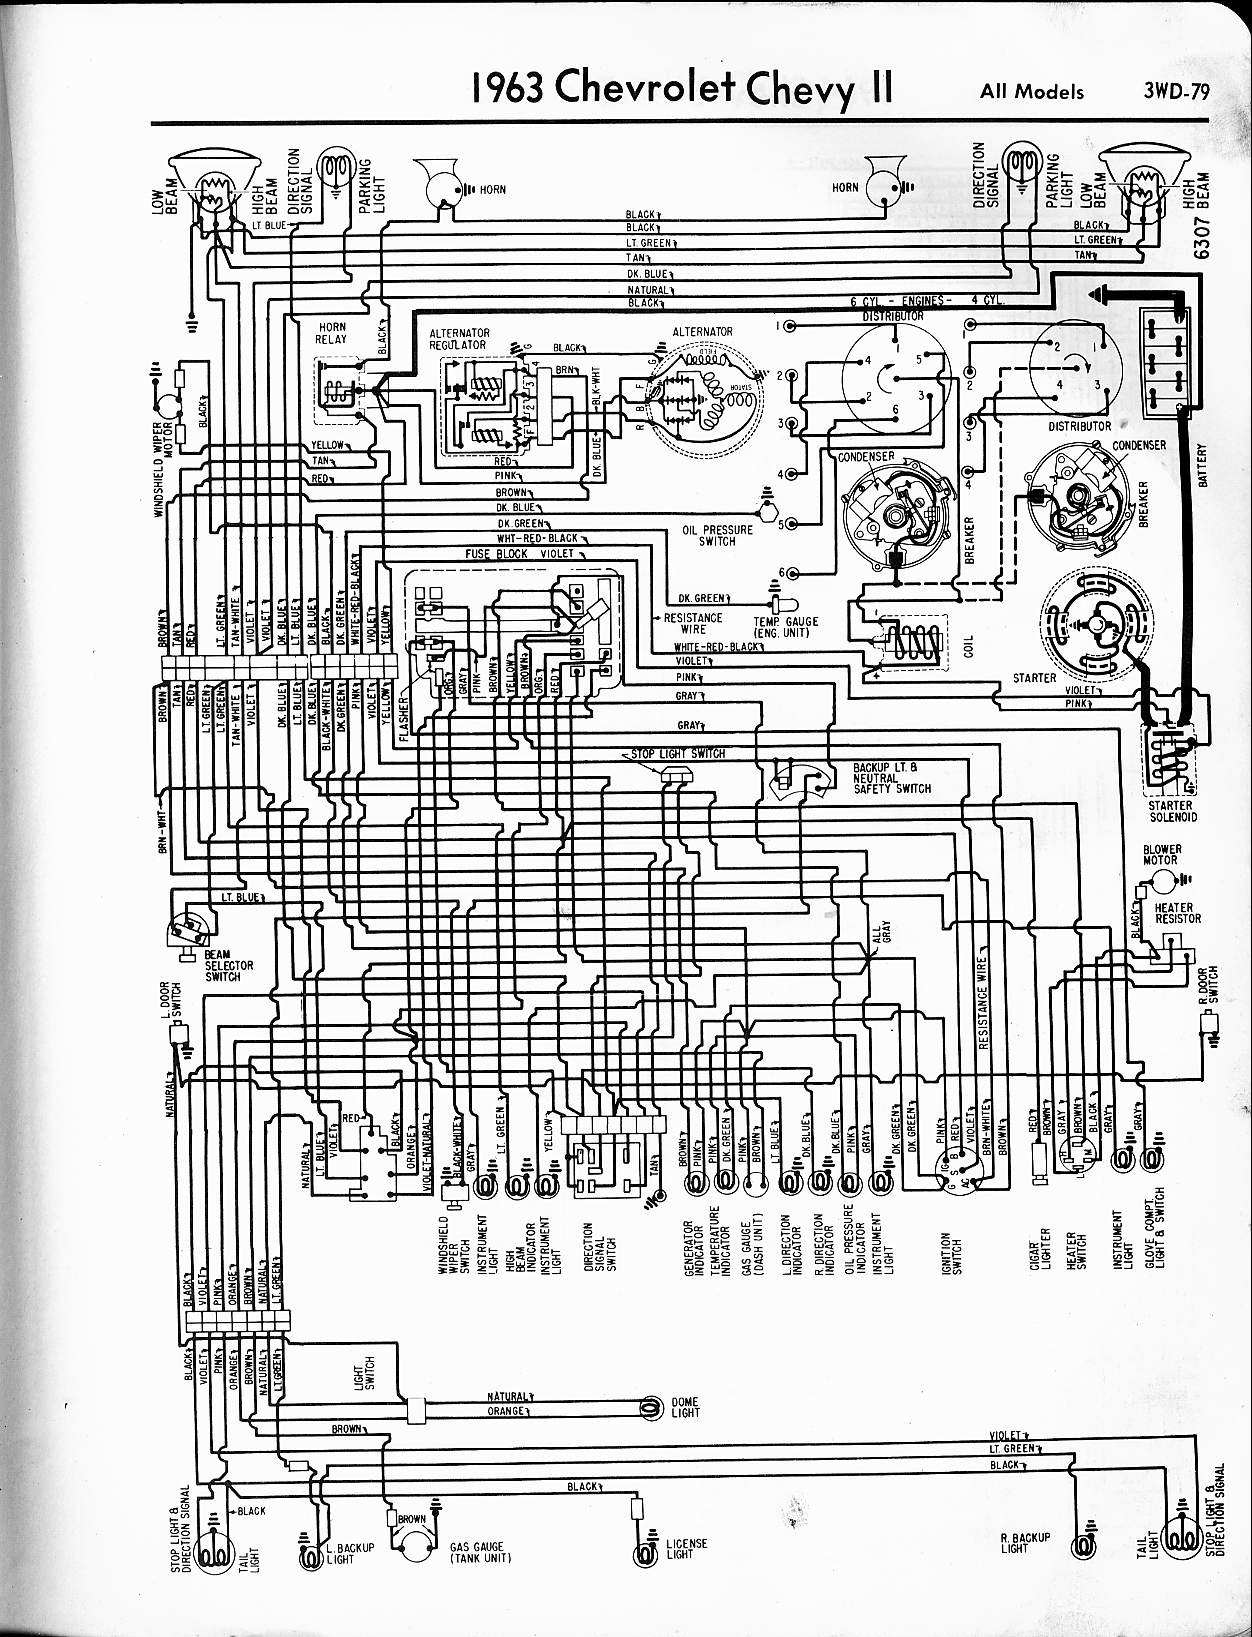 1964 nova wiring diagram heater electrical drawing wiring diagram 57 65 chevy wiring diagrams rh oldcarmanualproject com 1966 chevy nova wiring diagram 1967 chevy nova publicscrutiny Gallery